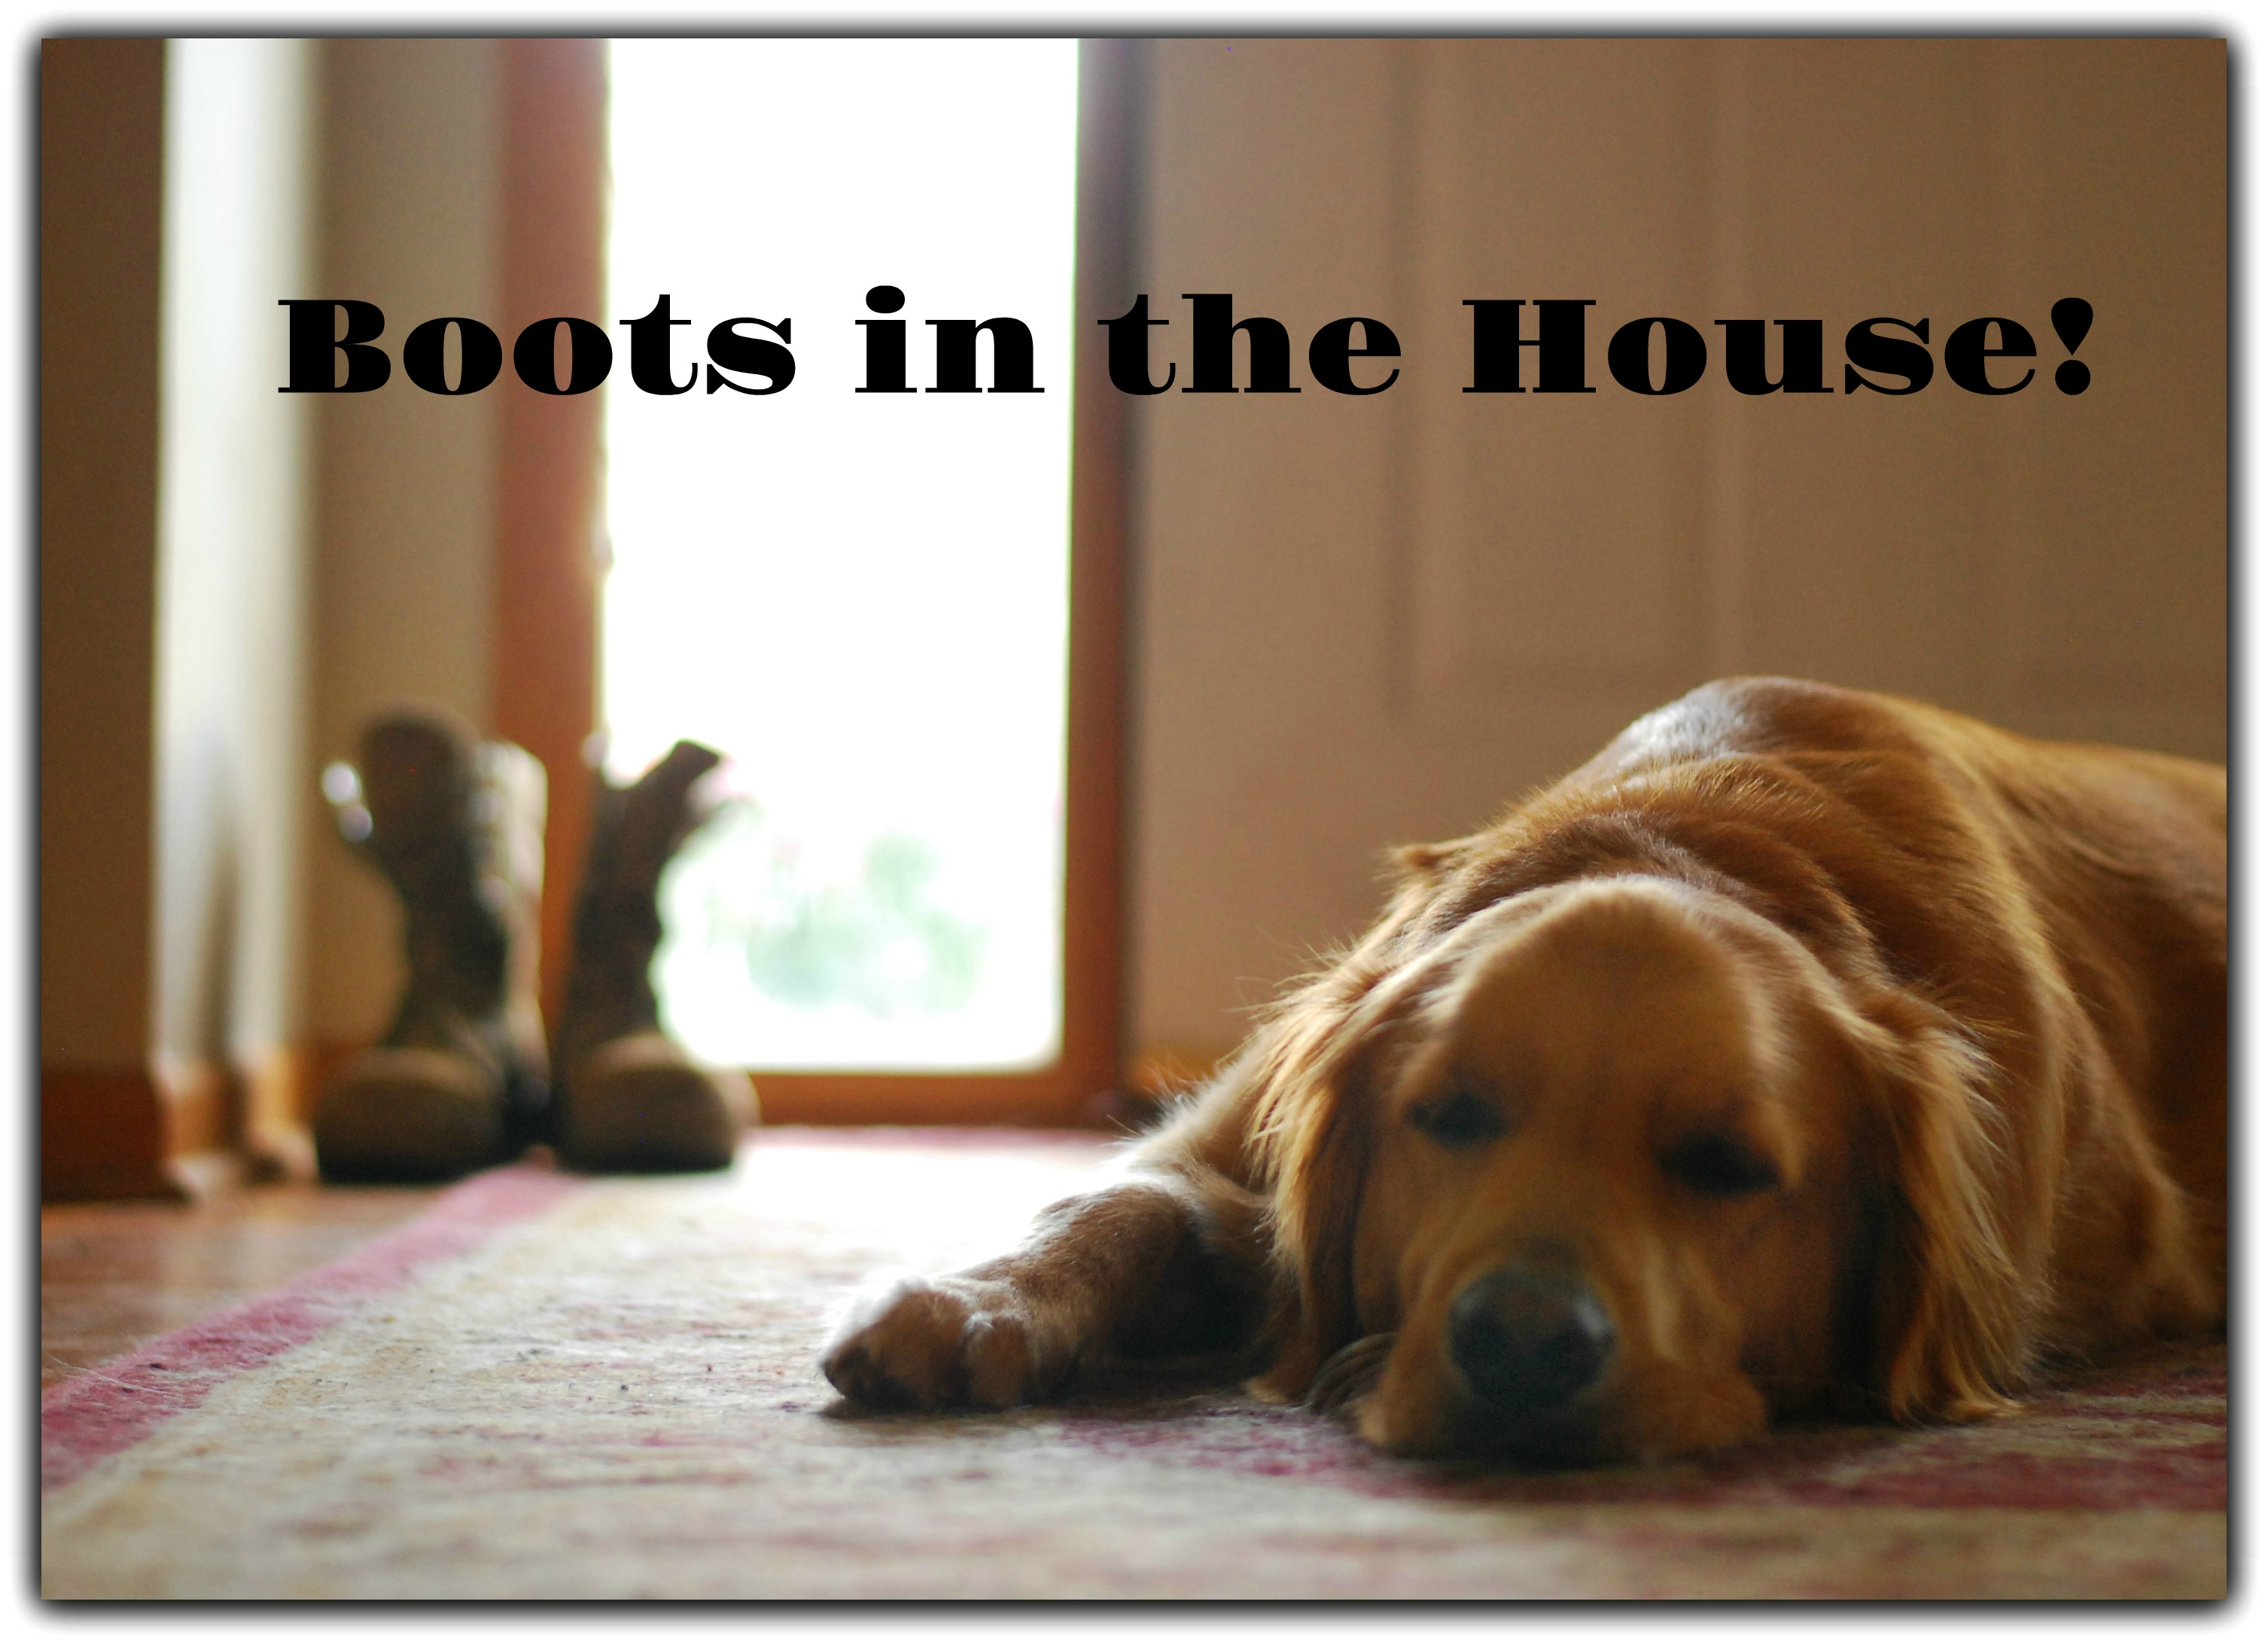 Boots in the House!